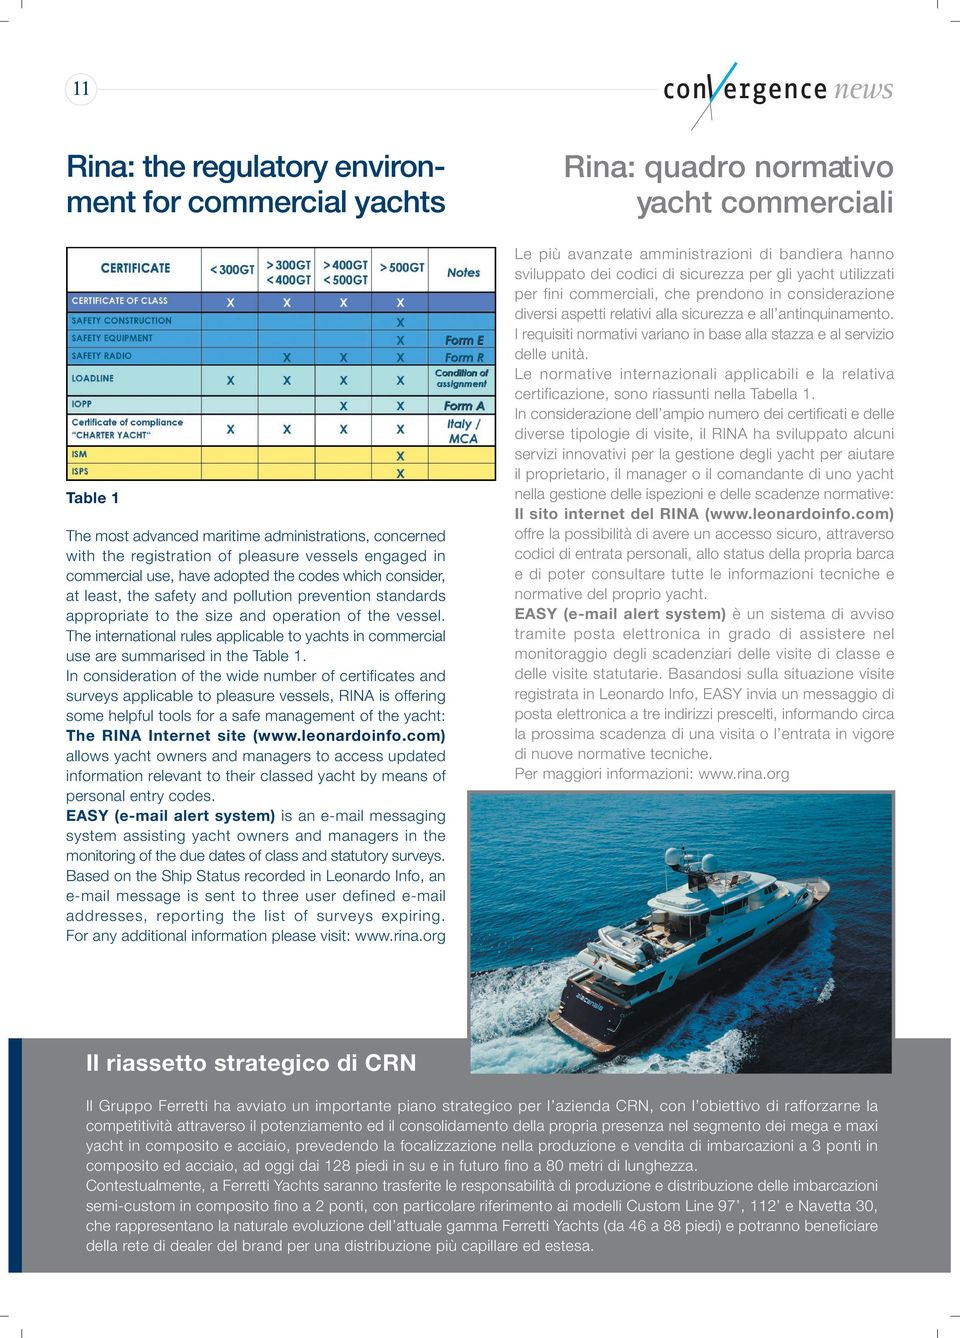 The international rules applicable to yachts in commercial use are summarised in the Table 1.